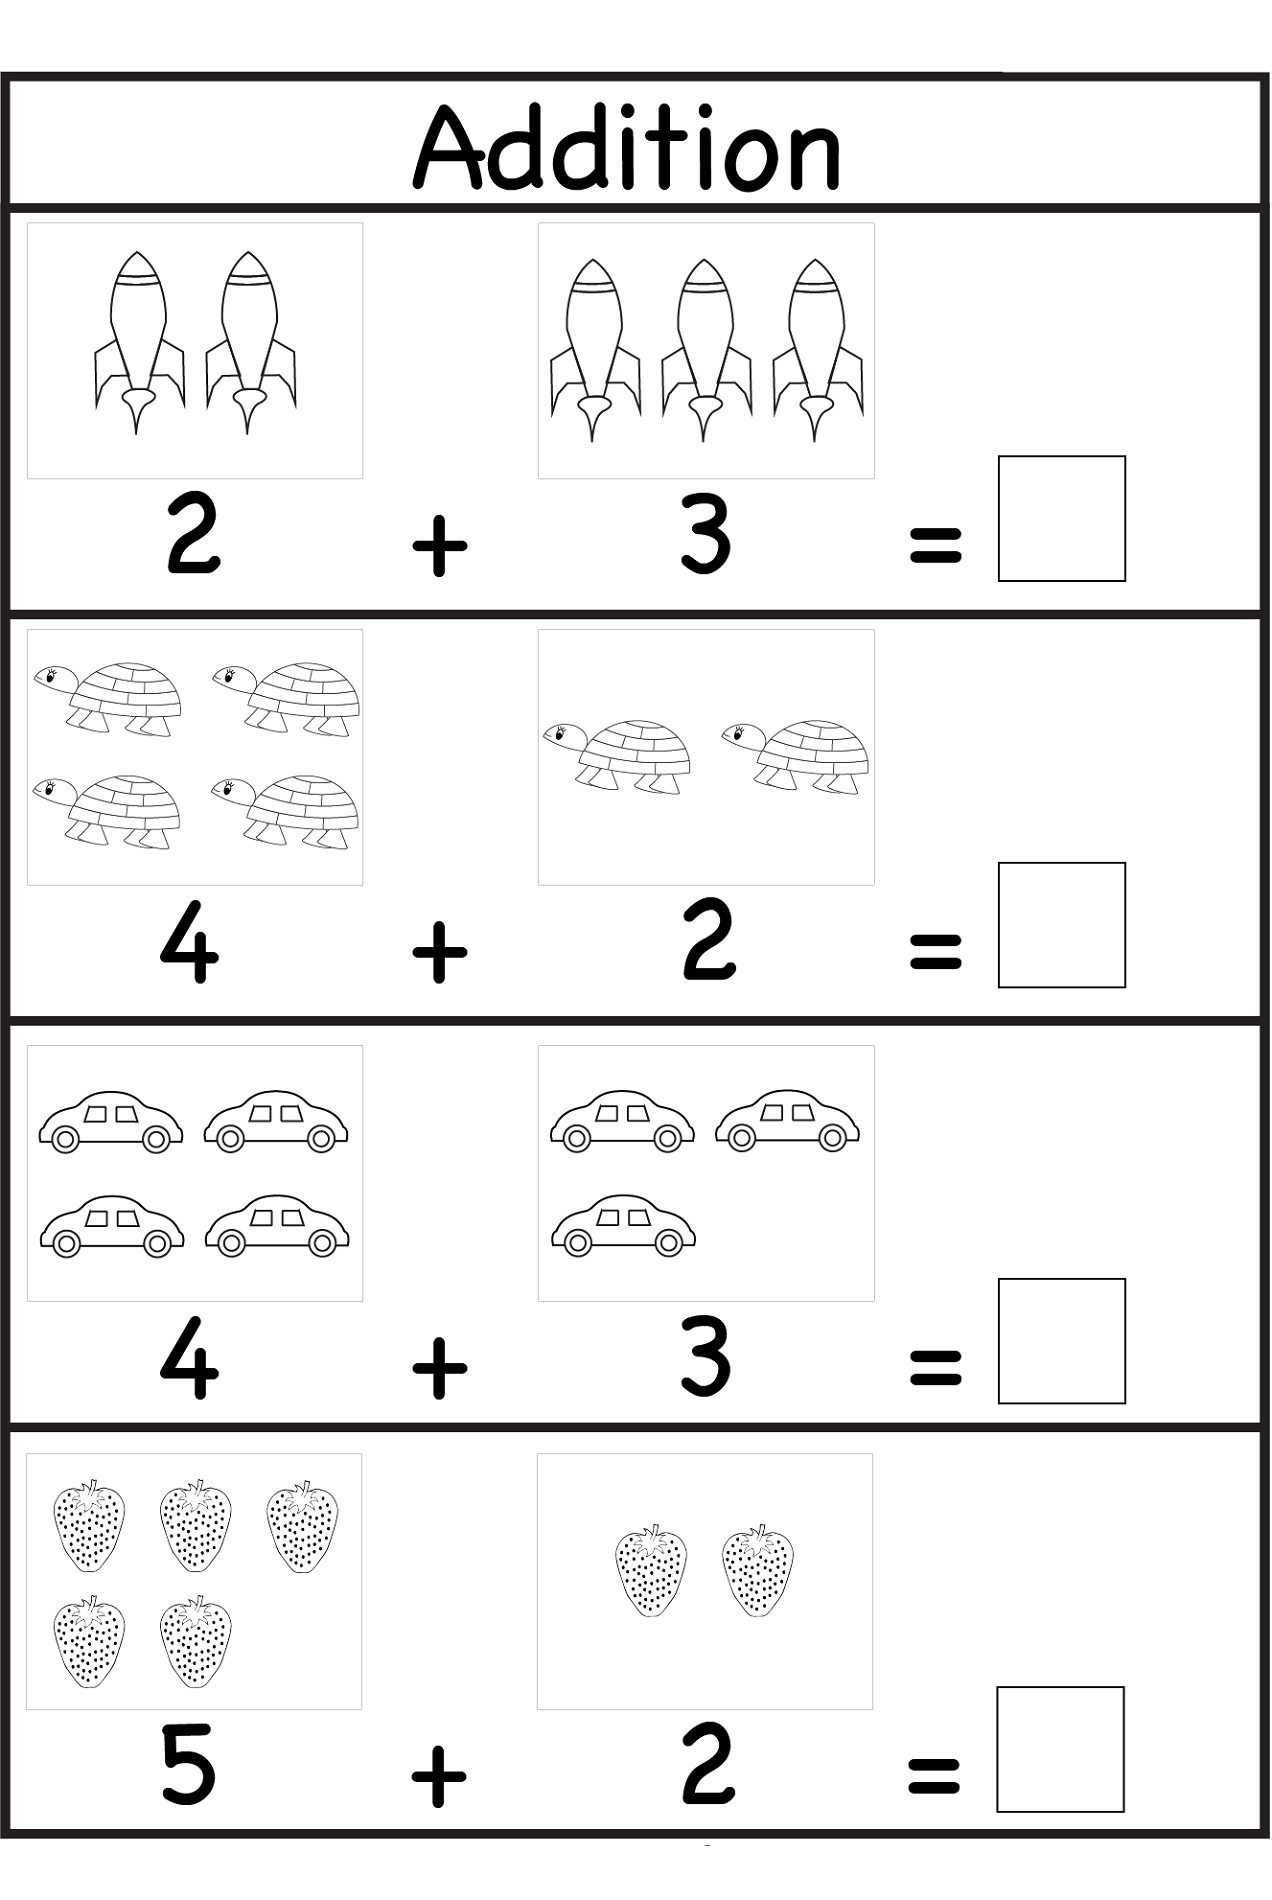 Worksheets for 3 Years Old Kids  Activity Shelter